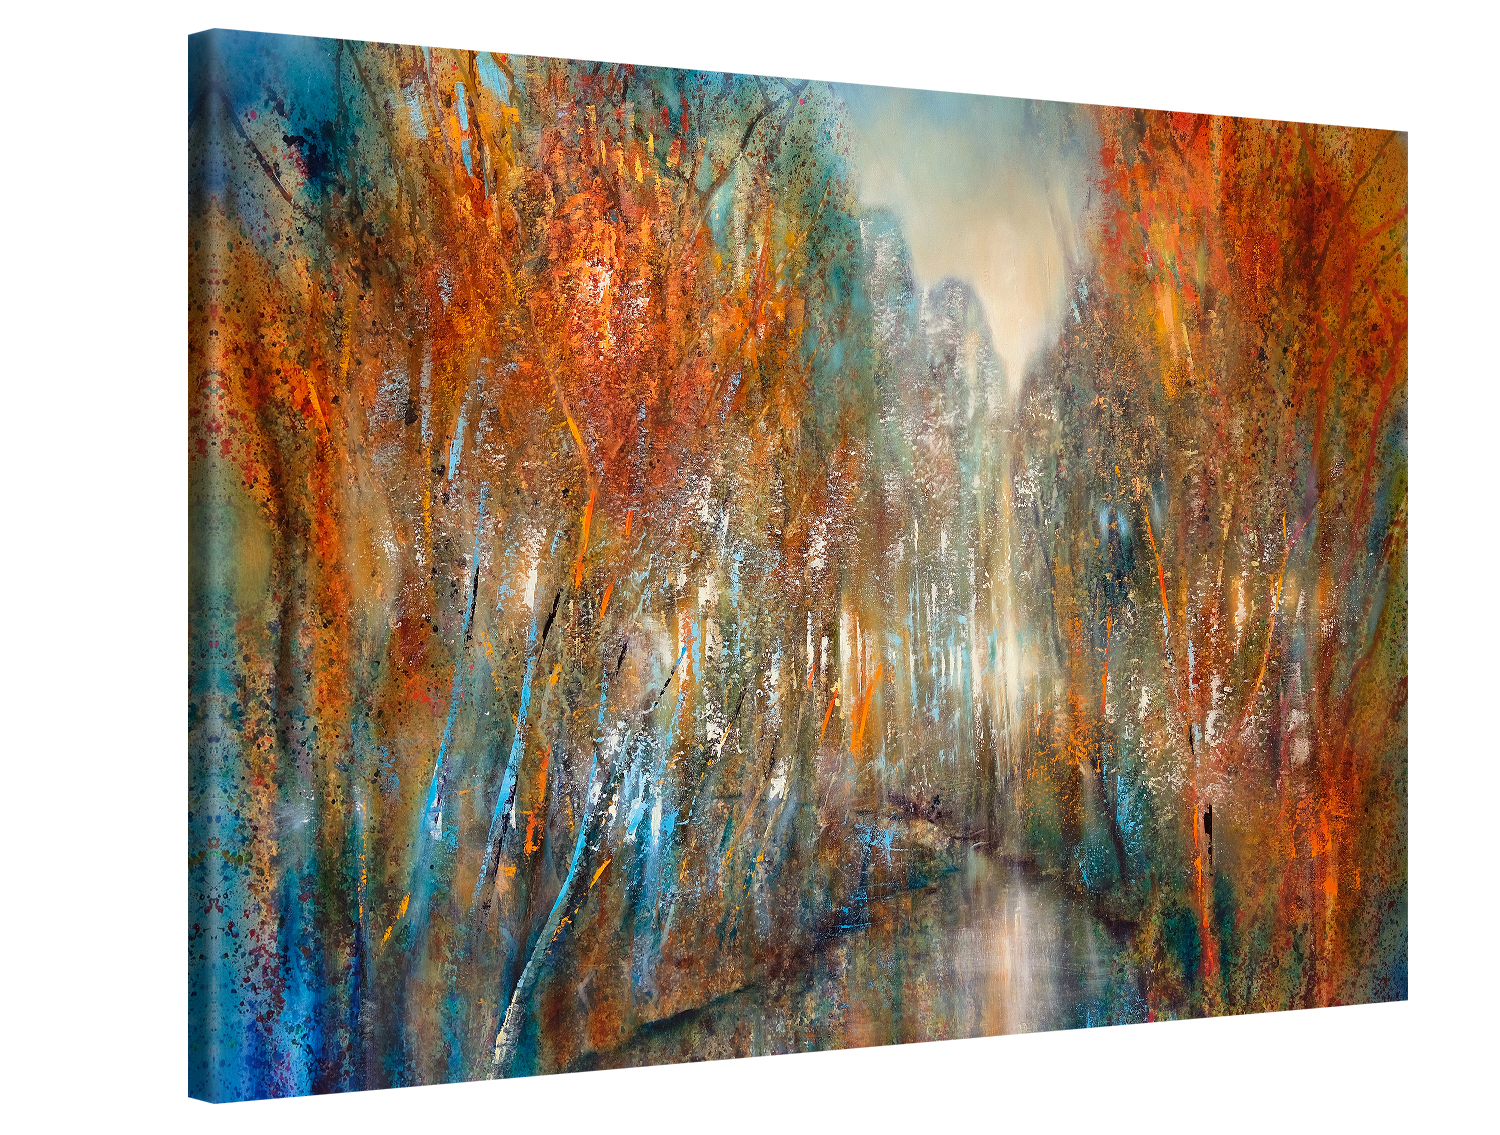 Forest River - 30x20 cm - Annette Schmucker #e13192